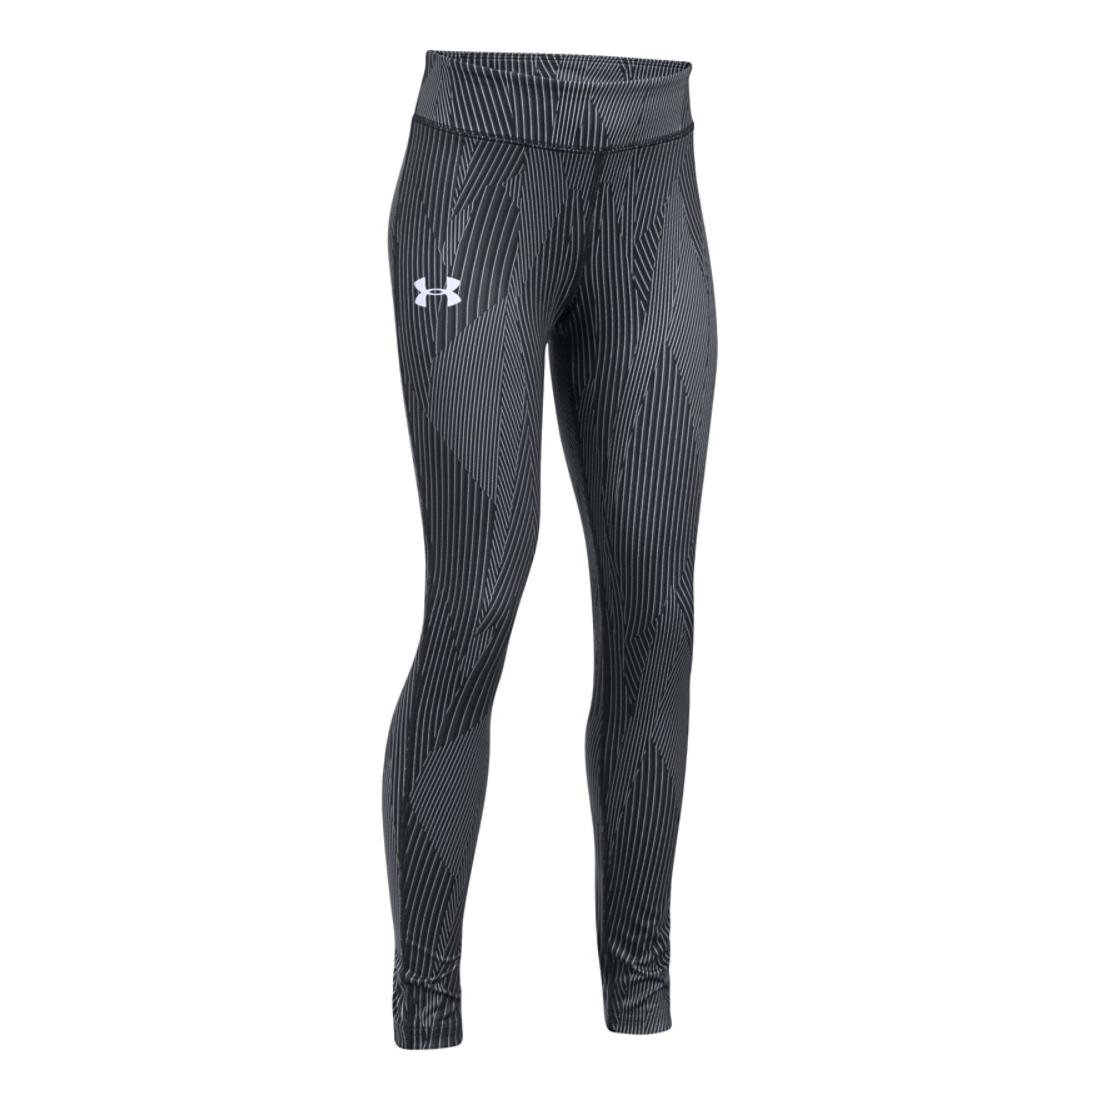 Under Armour Girls HeatGear Printed Legging, Black, LG (14-16 Big Kids) x One Size